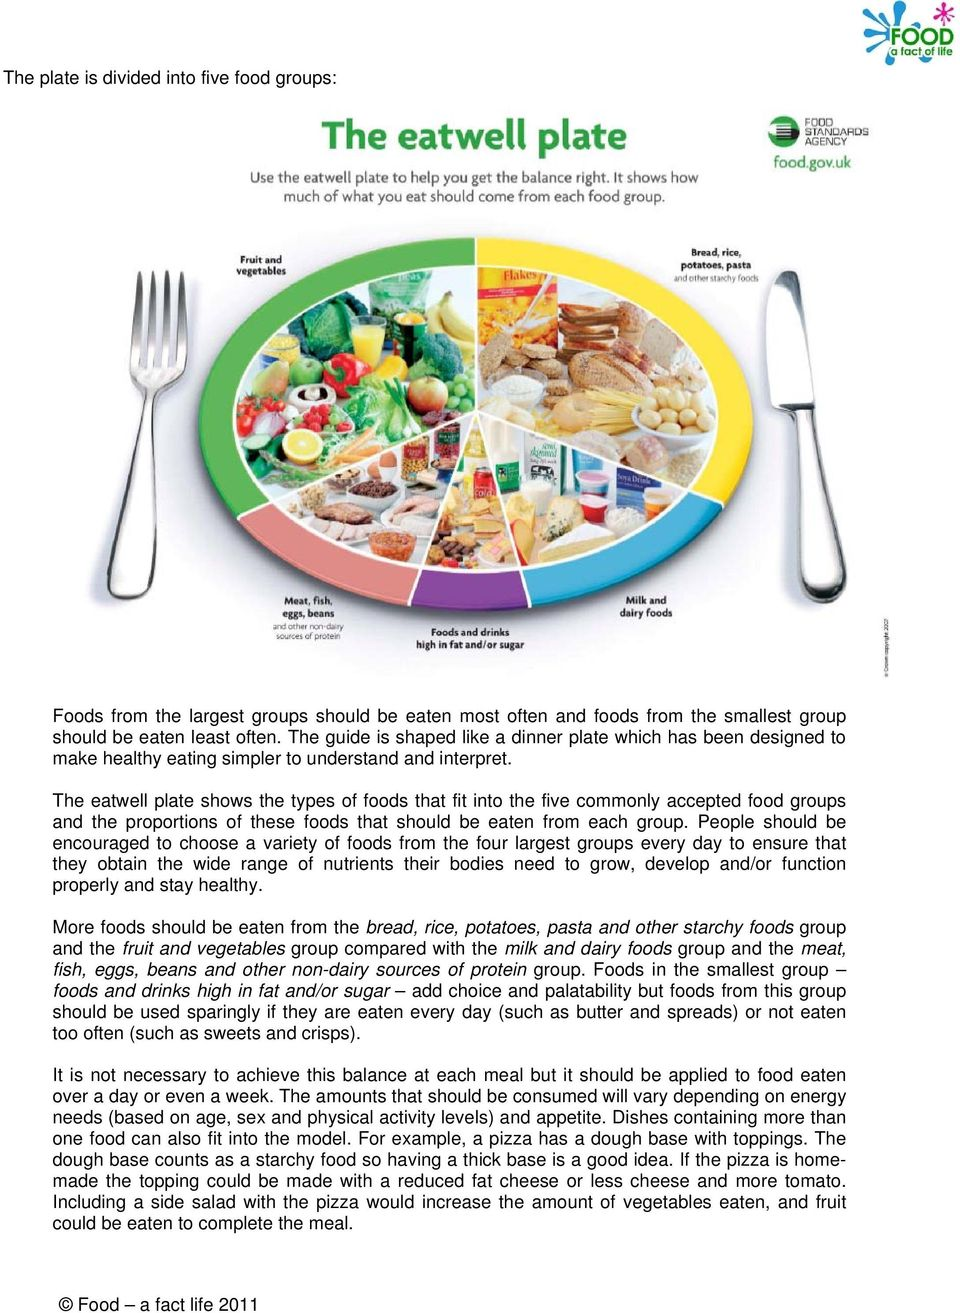 The eatwell plate shows the types of foods that fit into the five commonly accepted food groups and the proportions of these foods that should be eaten from each group.